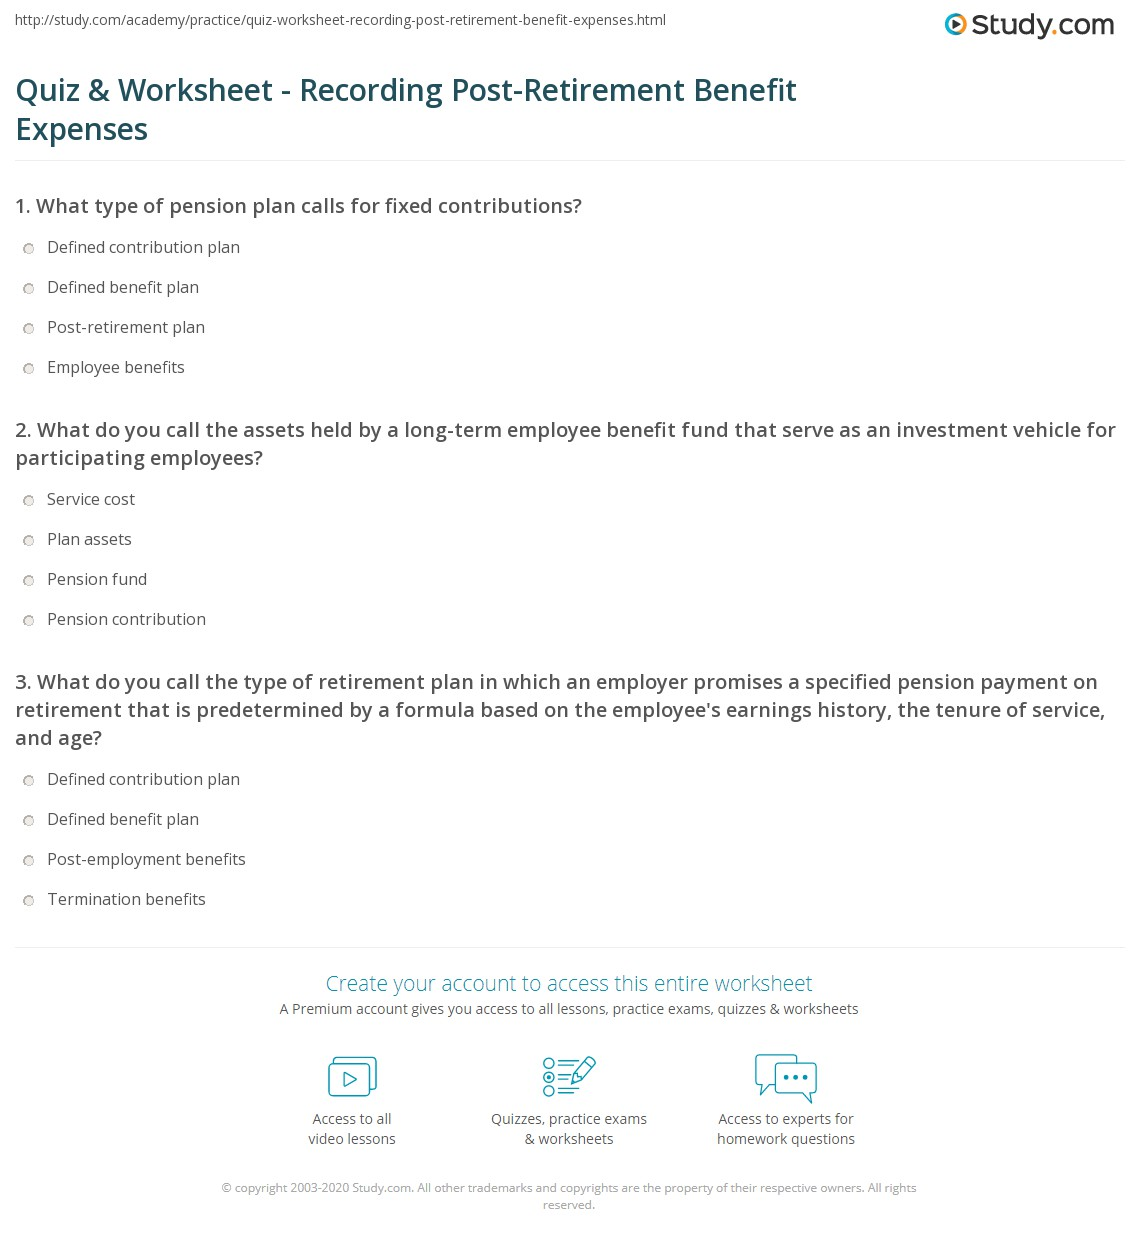 quiz & worksheet - recording post-retirement benefit expenses